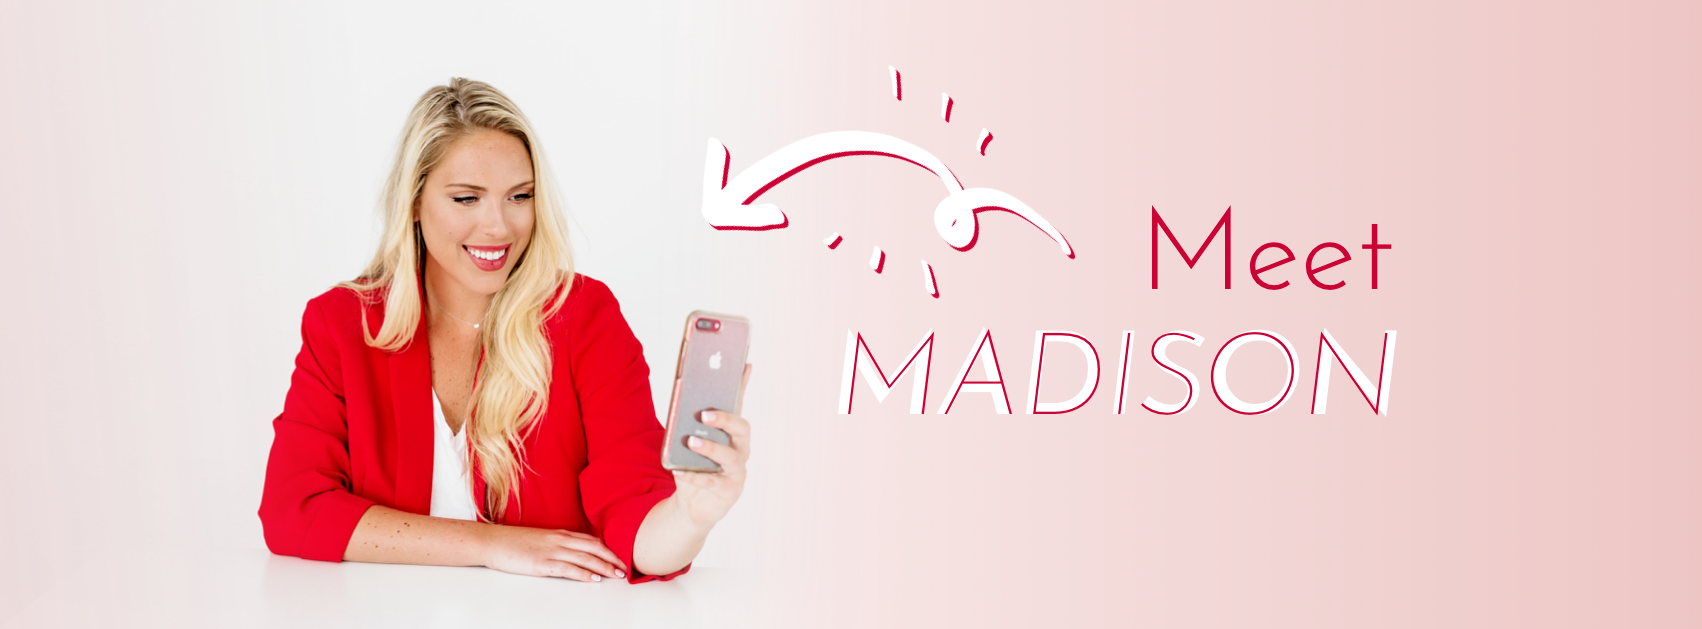 Madison Tinder of Mini Trainings for Profit